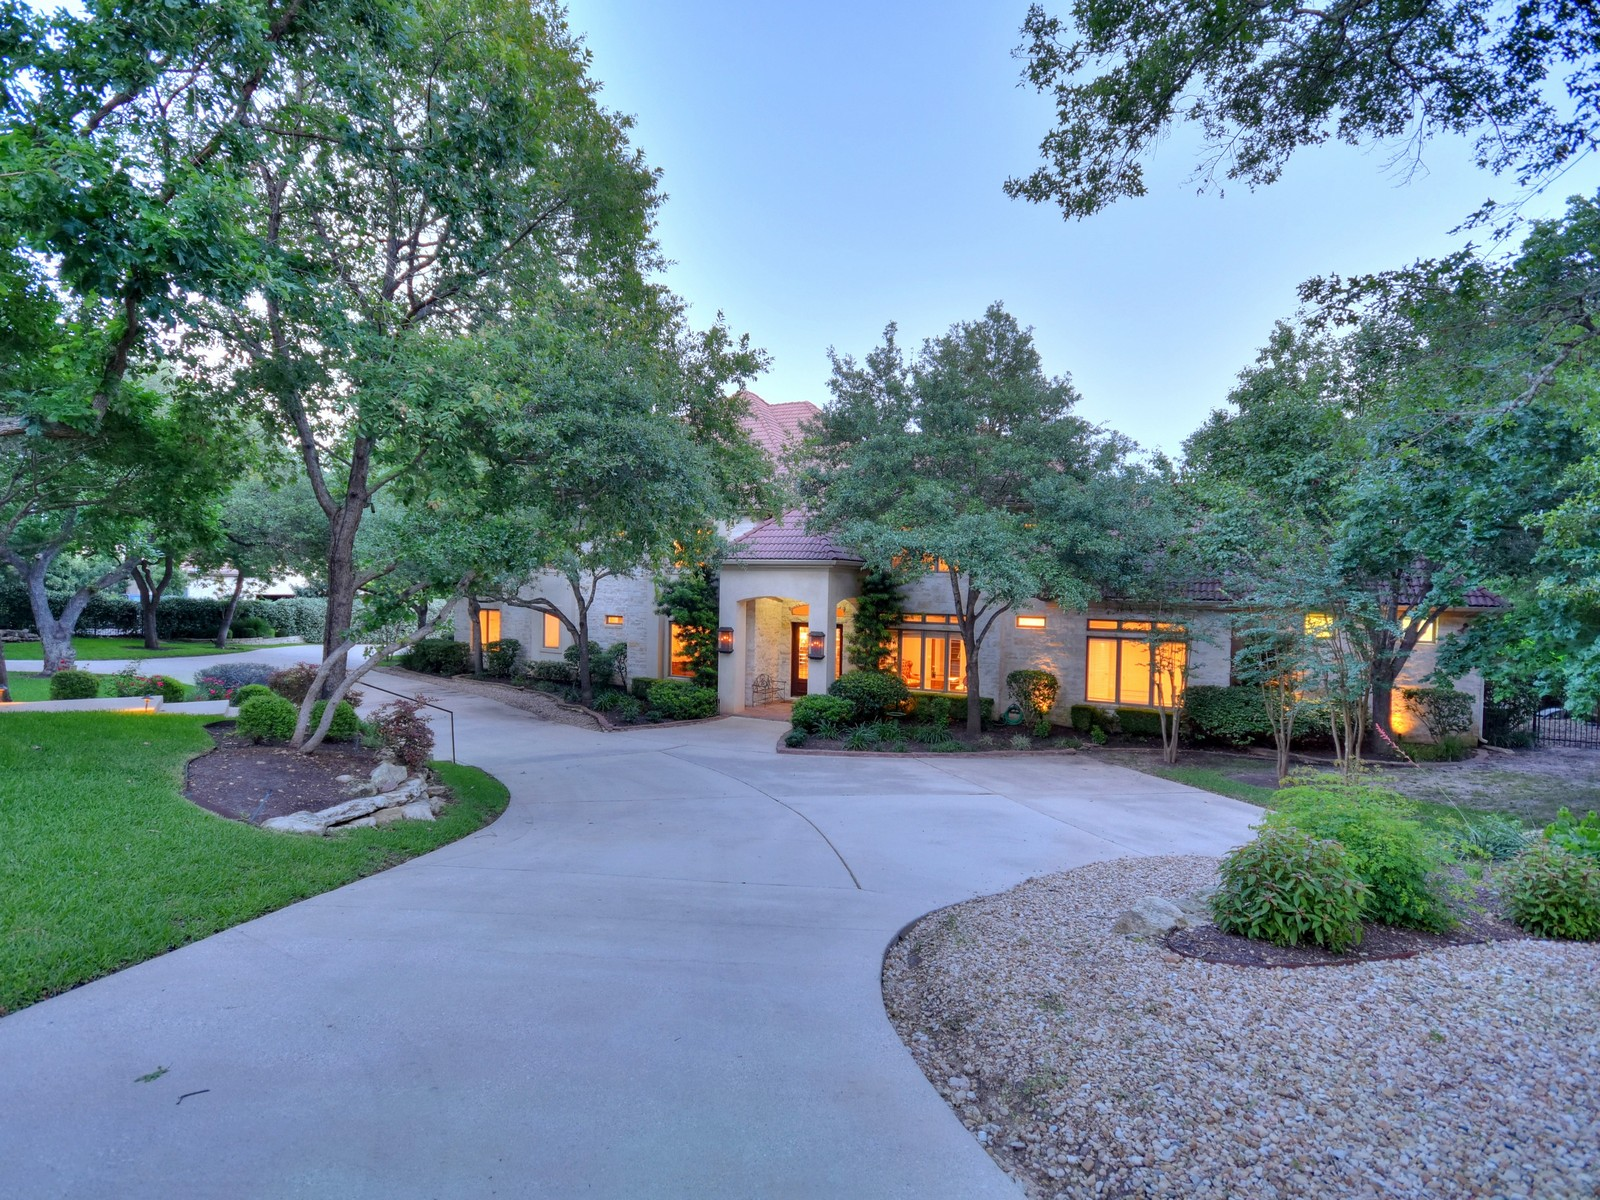 Single Family Home for Sale at Westlake Oasis on 1.277 Acres 4011 Bunny Run Austin, Texas, 78746 United States